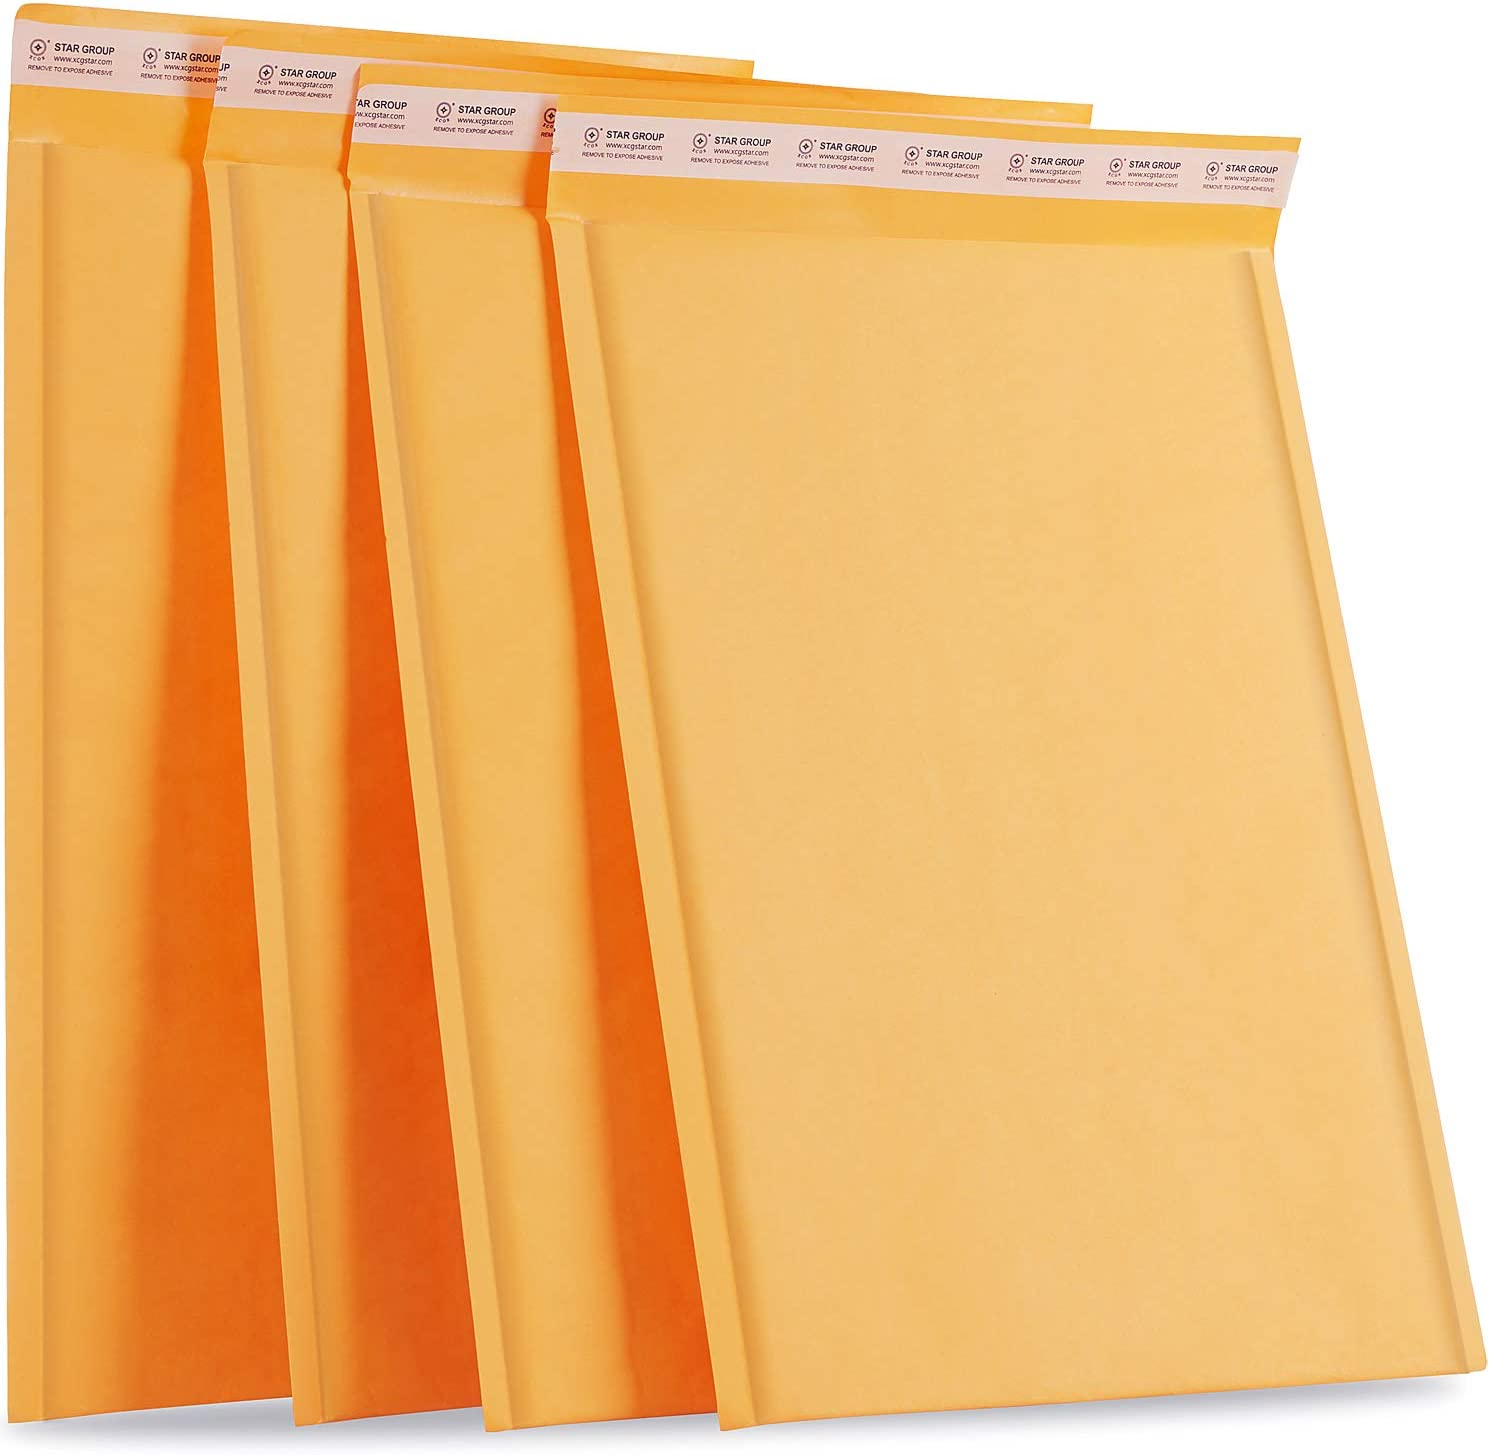 XCGS 10.5x16 Max 82% OFF Super Special SALE held inch Padded Bubble Envelopes Kraft Mailer #2